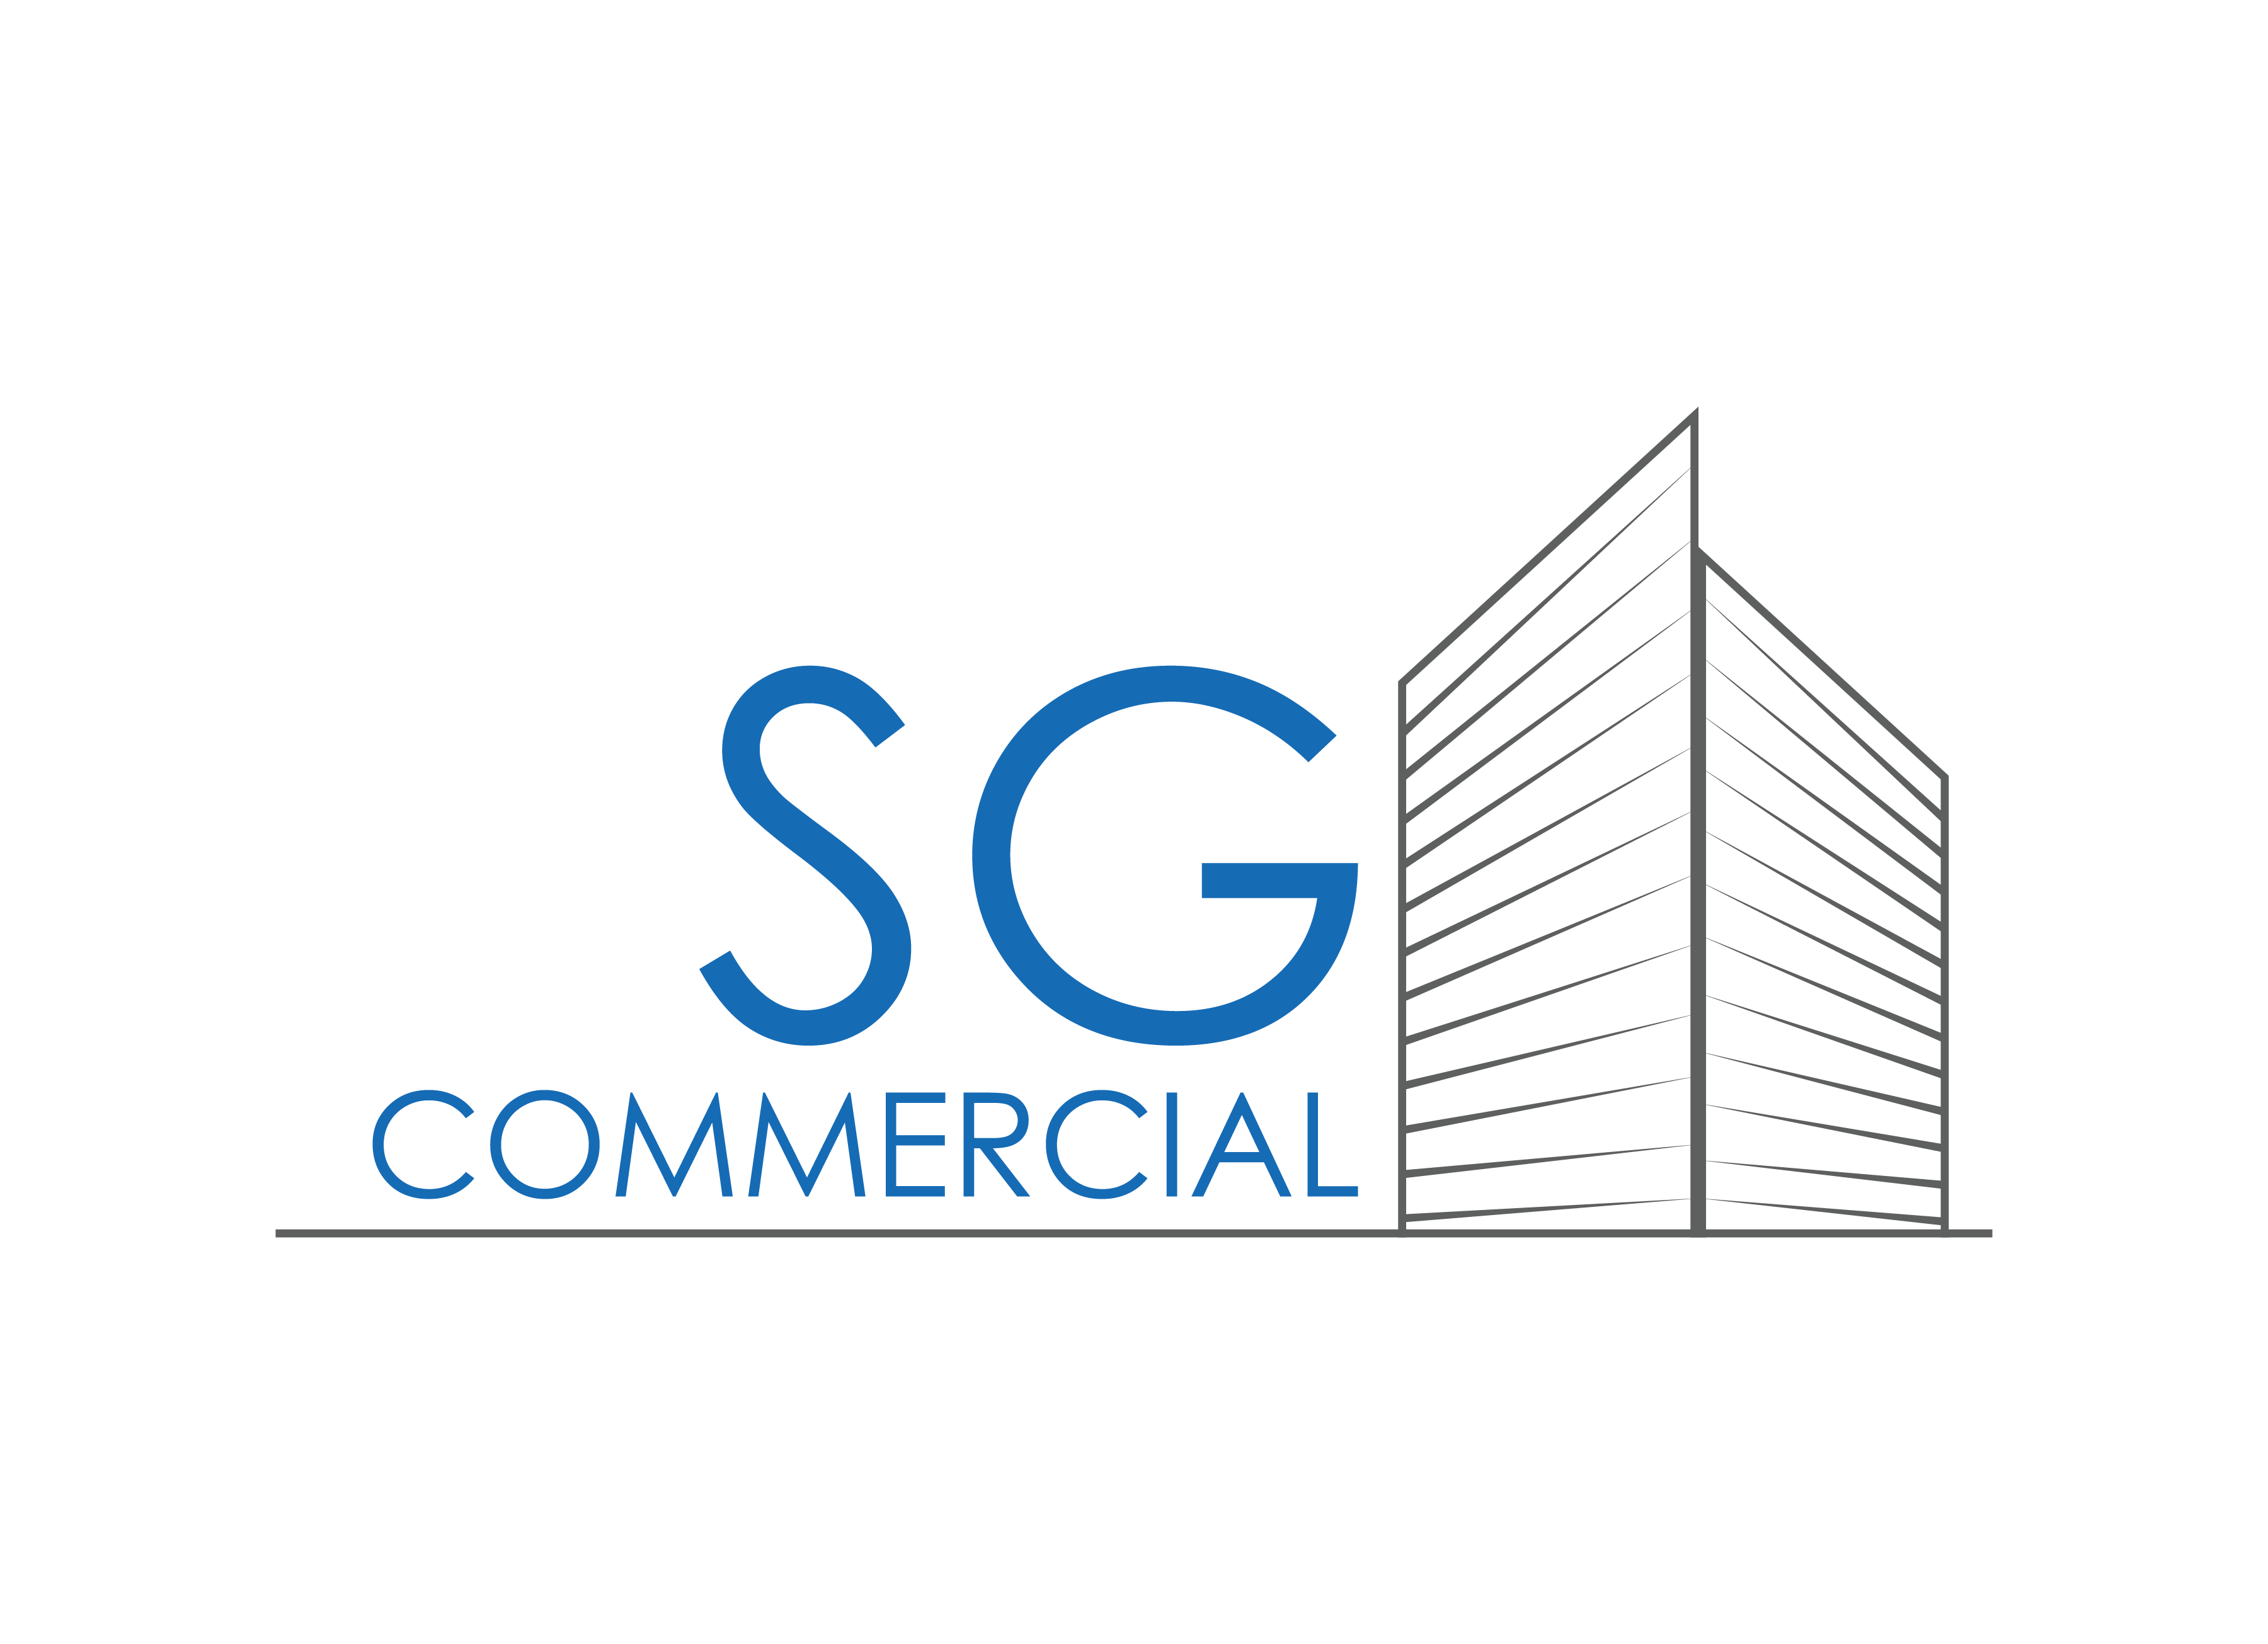 SG Commercial